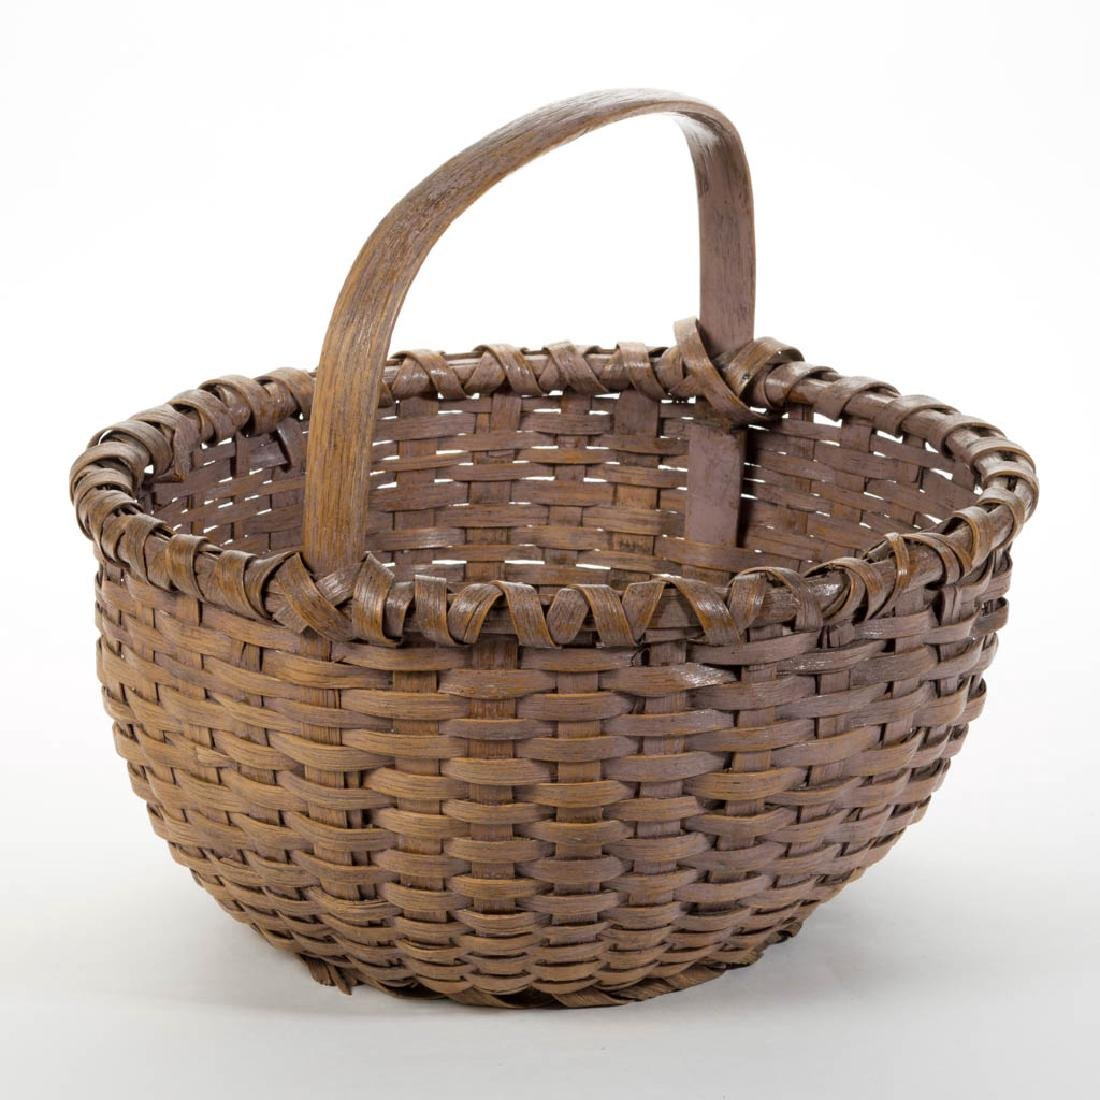 VIRGINIA PAINTED STAVE-TYPE WOVEN-SPLINT WORK BASKET - 2